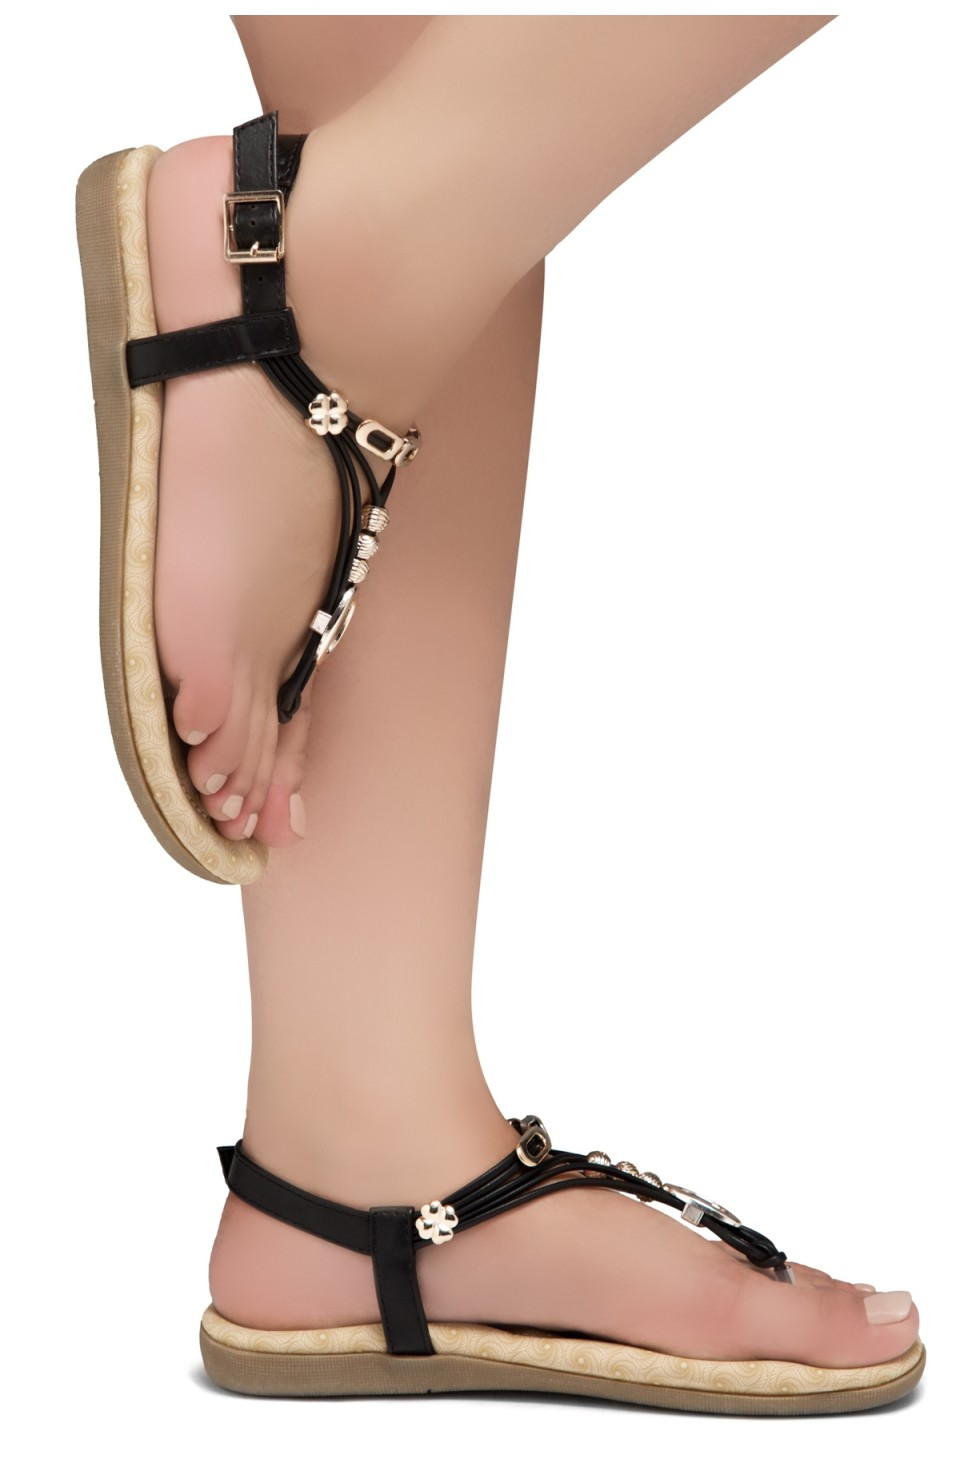 Shoe Land Issy-Manmade Women's Flat Sandal with Flirty Metallic Accents (Black)